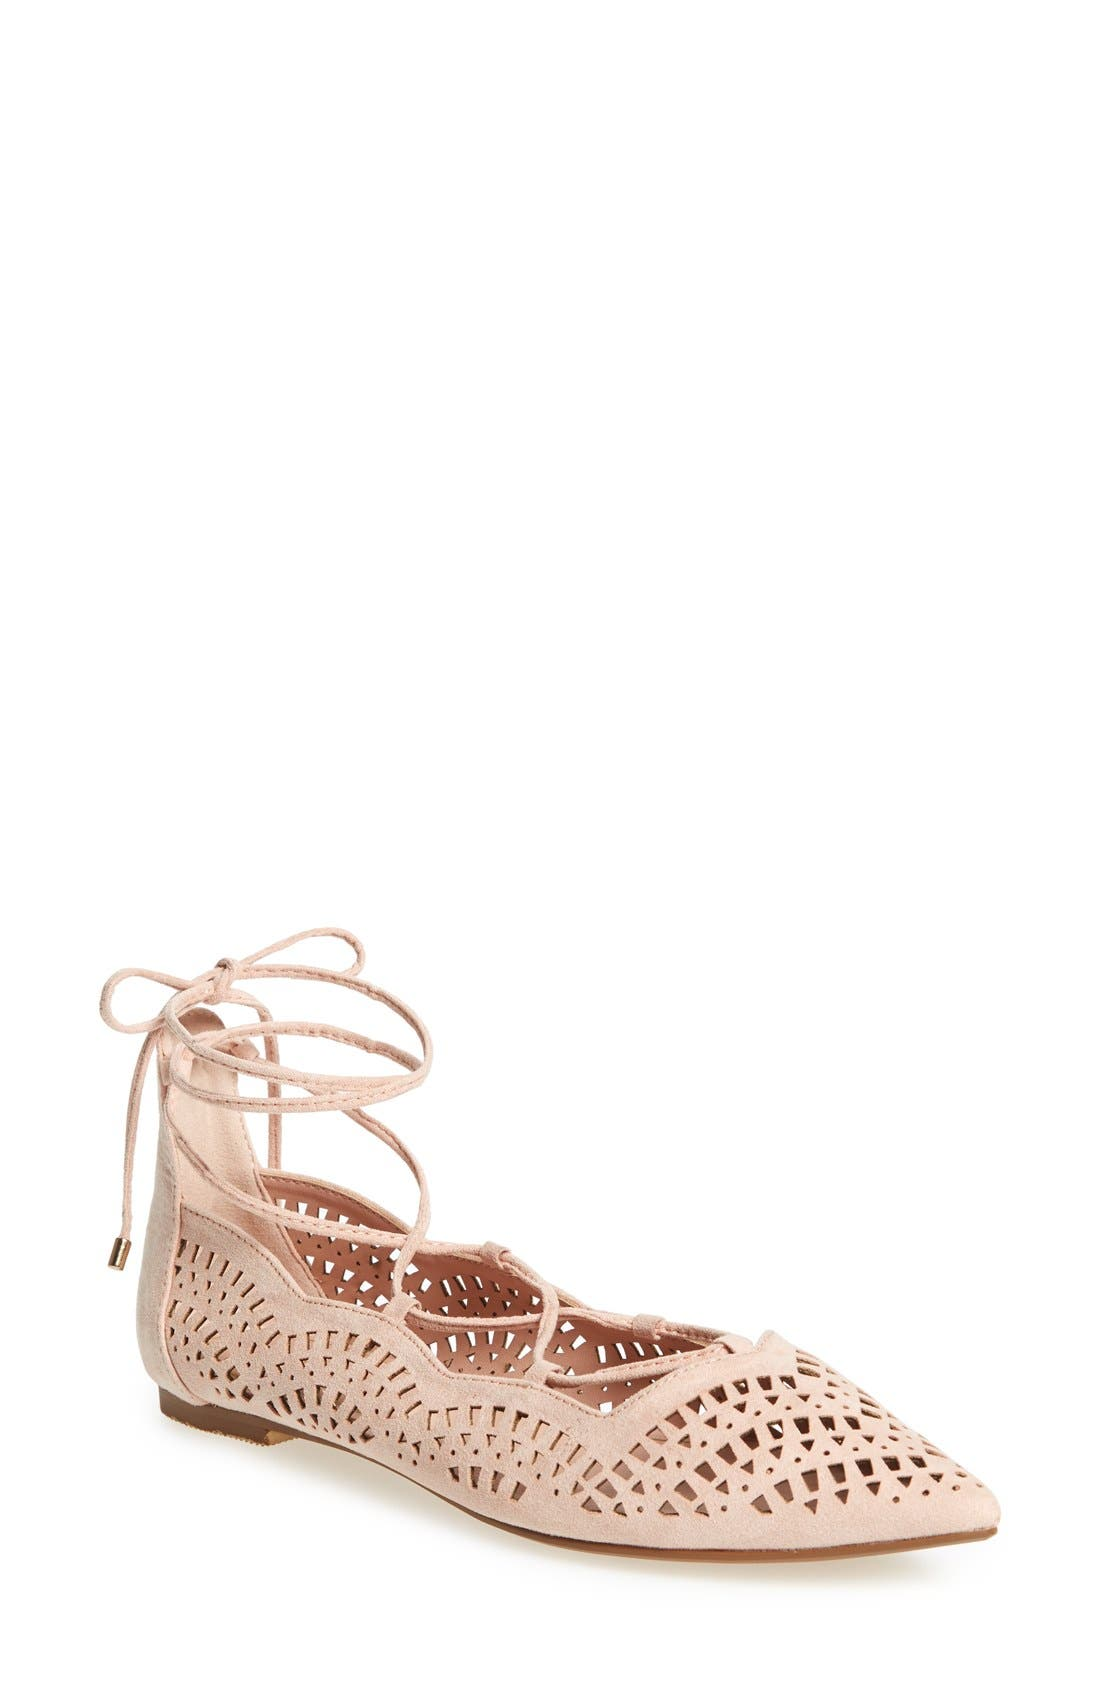 Alternate Image 1 Selected - Topshop 'N Fase Laser' Ghillie Flat